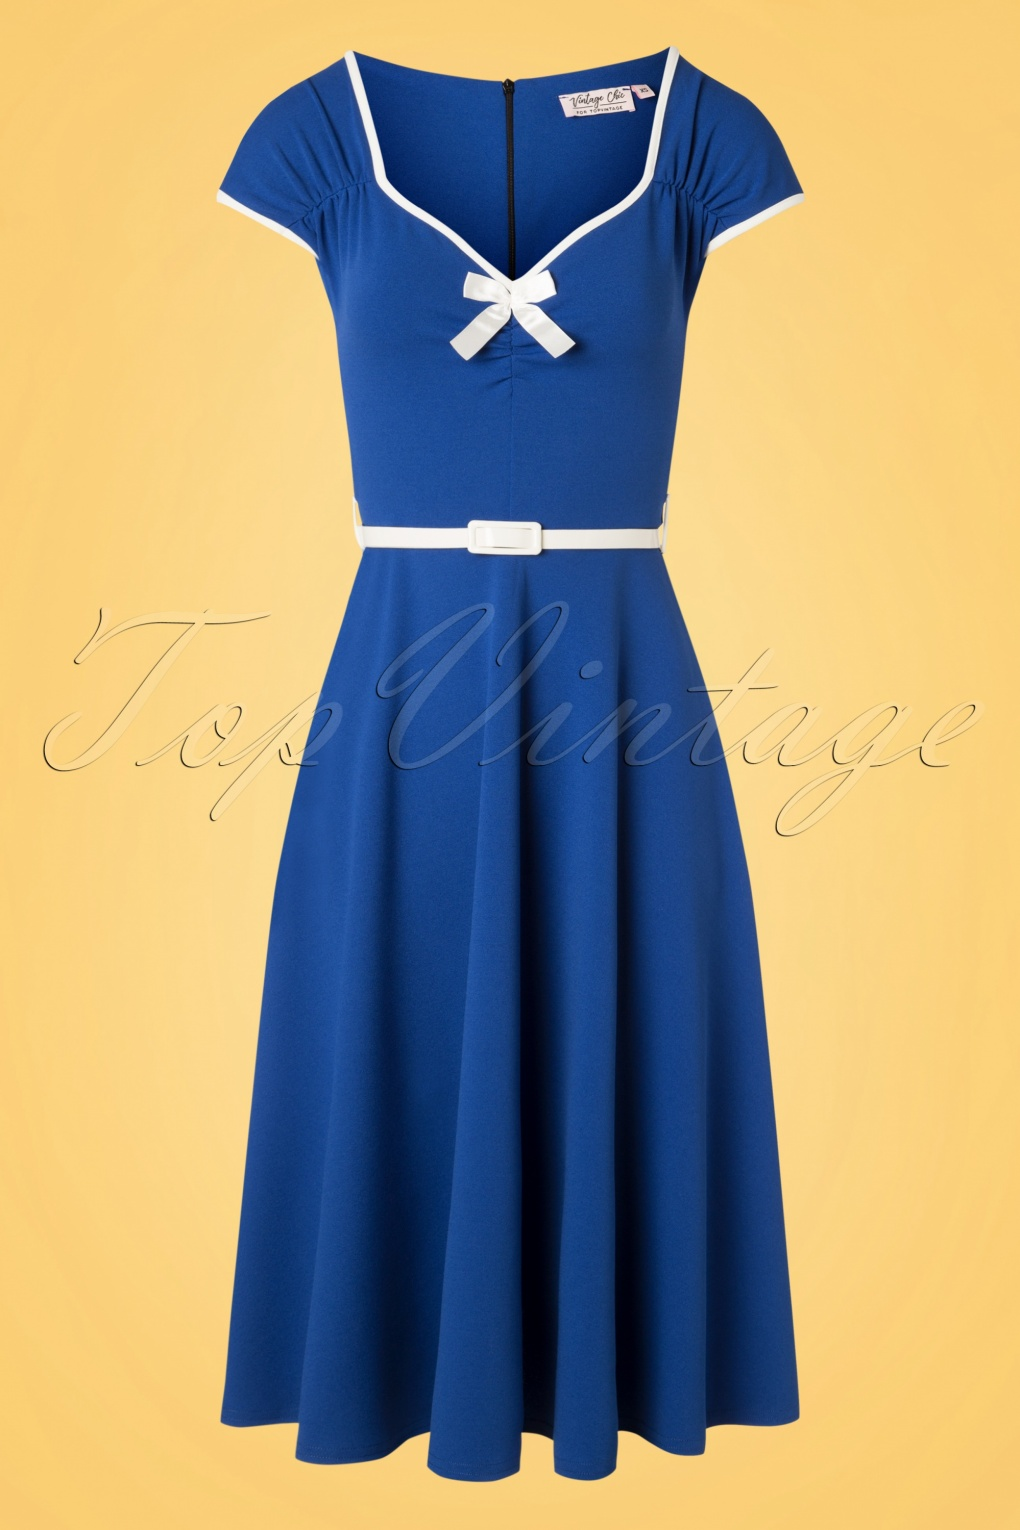 Sailor Dresses, Nautical Theme Dress, WW2 Dresses 50s Cindy Bow Swing Dress in Royal Blue £49.05 AT vintagedancer.com